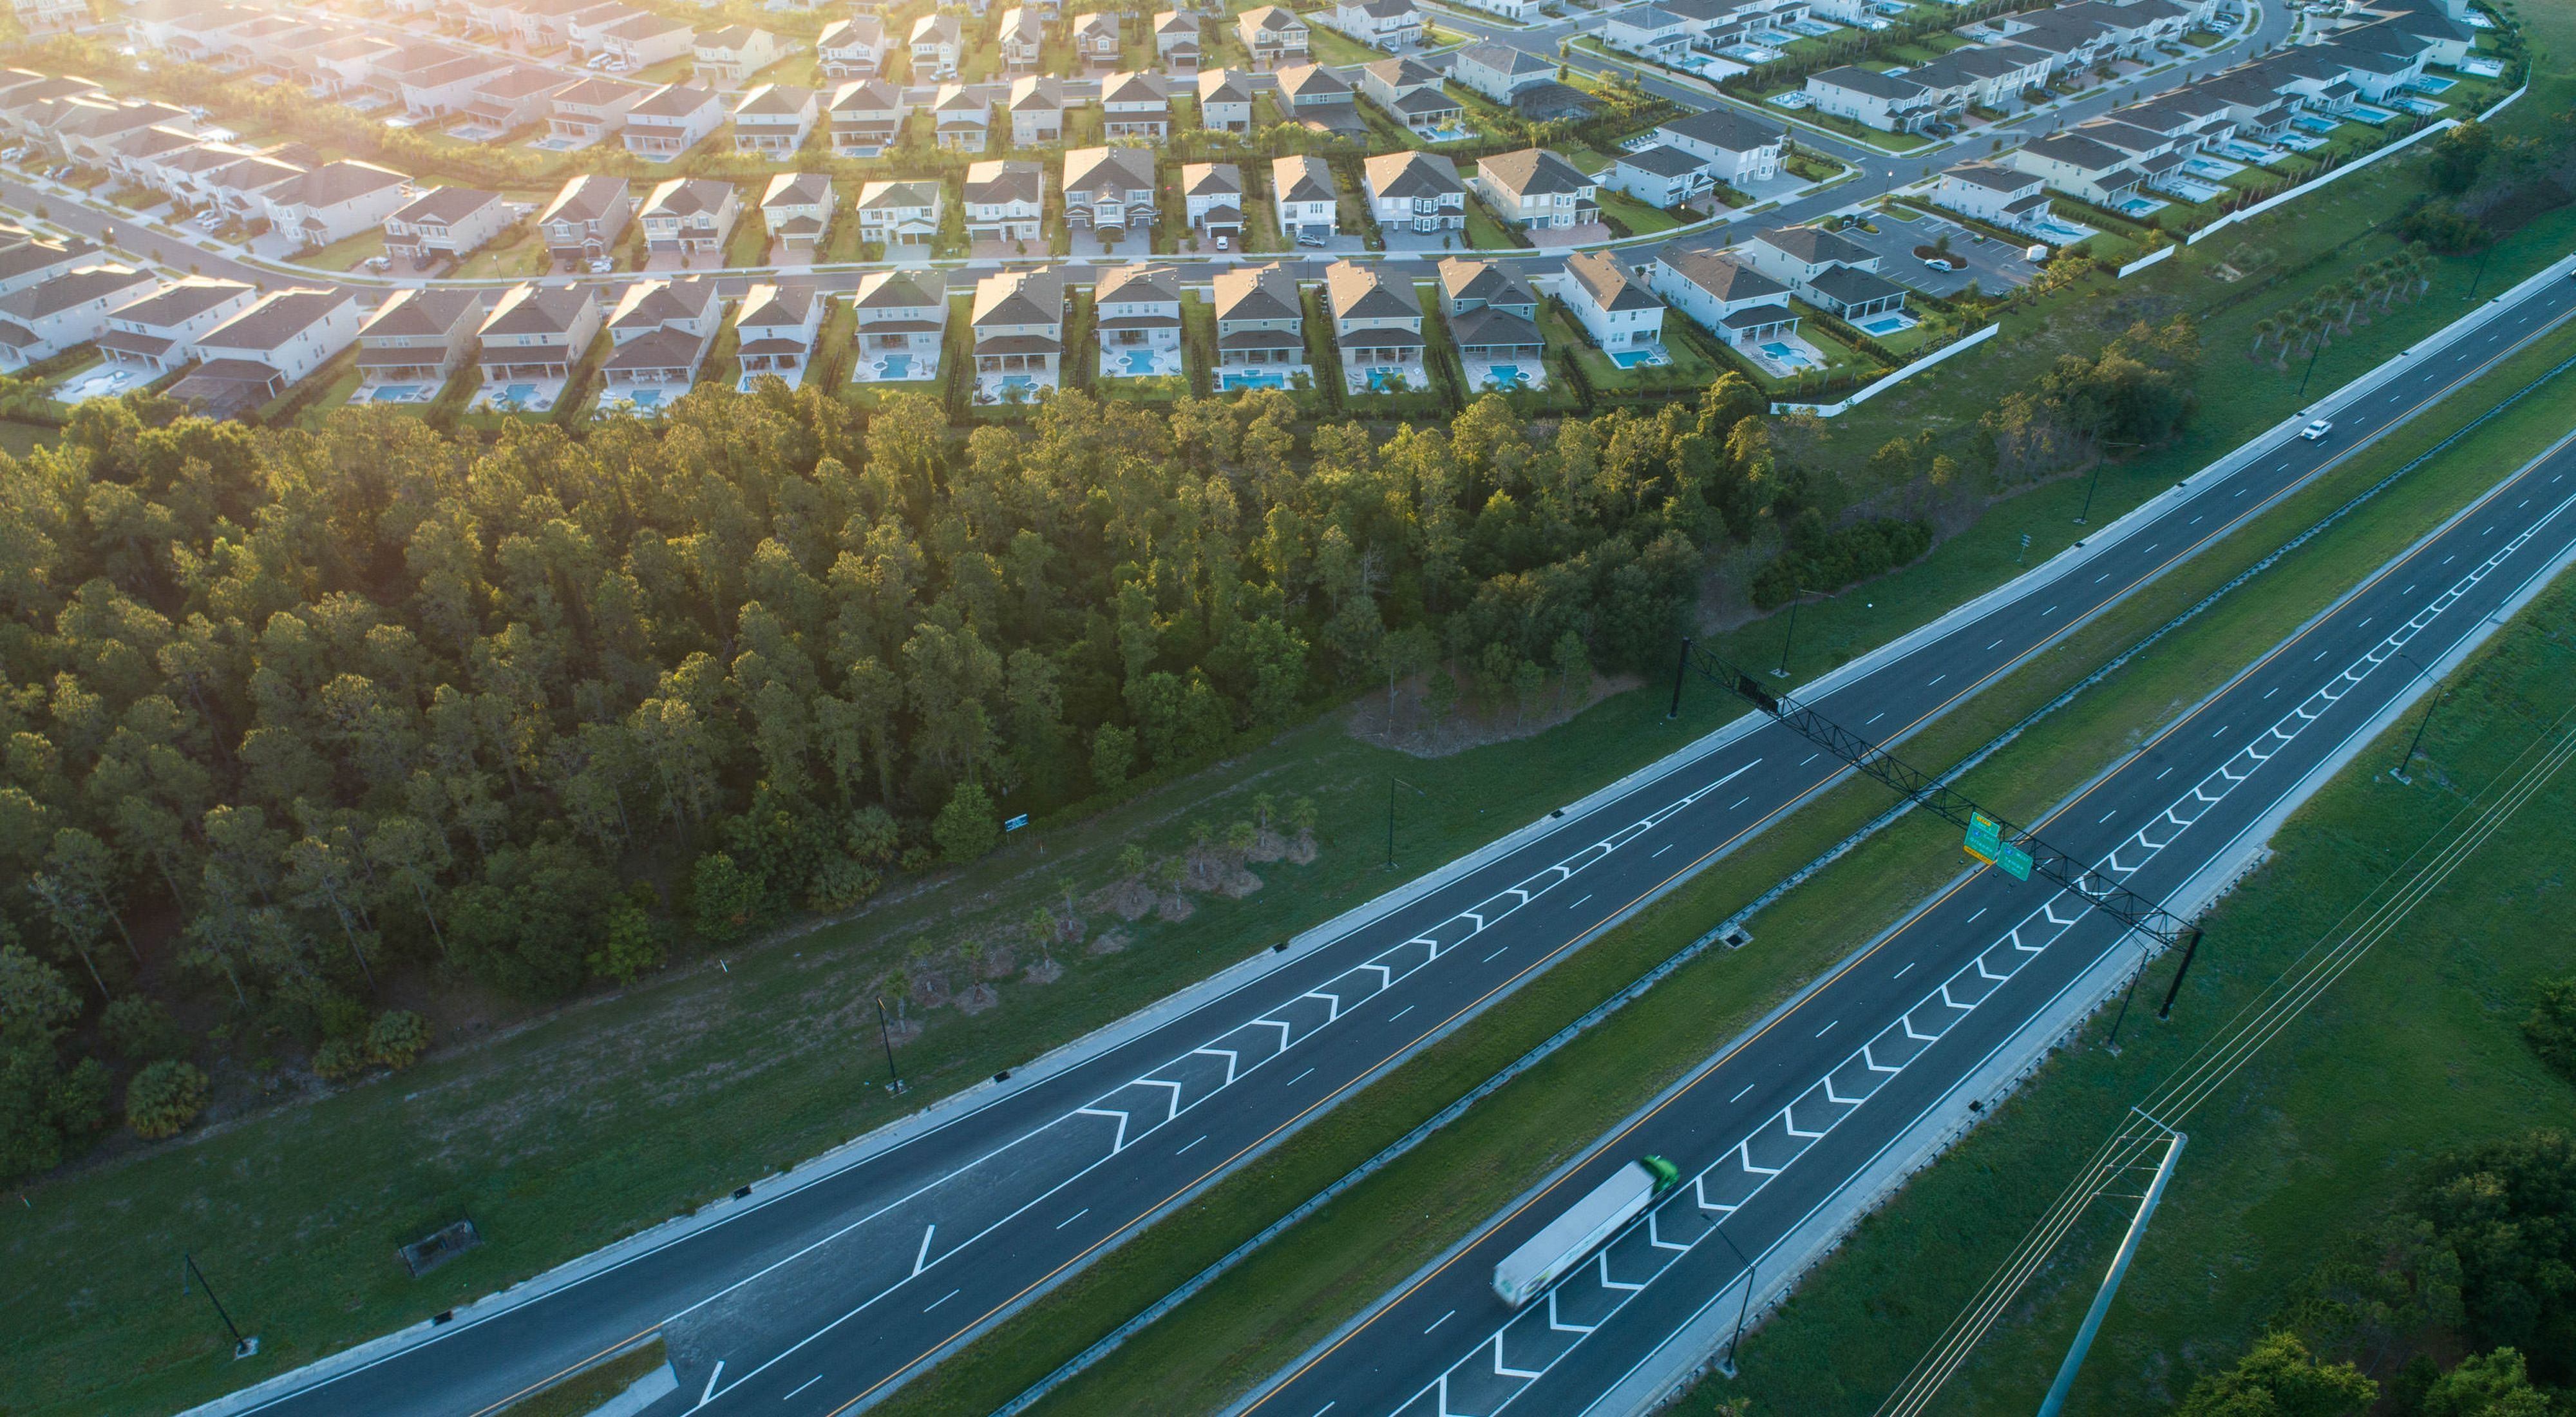 An aerial photo depicting new  housing development sprawling outward from Orlando, Florida, near where the State Road 429 (a toll road)  branches north from Interstate 4.  The development, named Reunion, is adjacent to Reedy Creek, which is one of the most narrow and fragile threads of wildlife habitat in the statewide Florida Wildlife Corridor. May 2019.